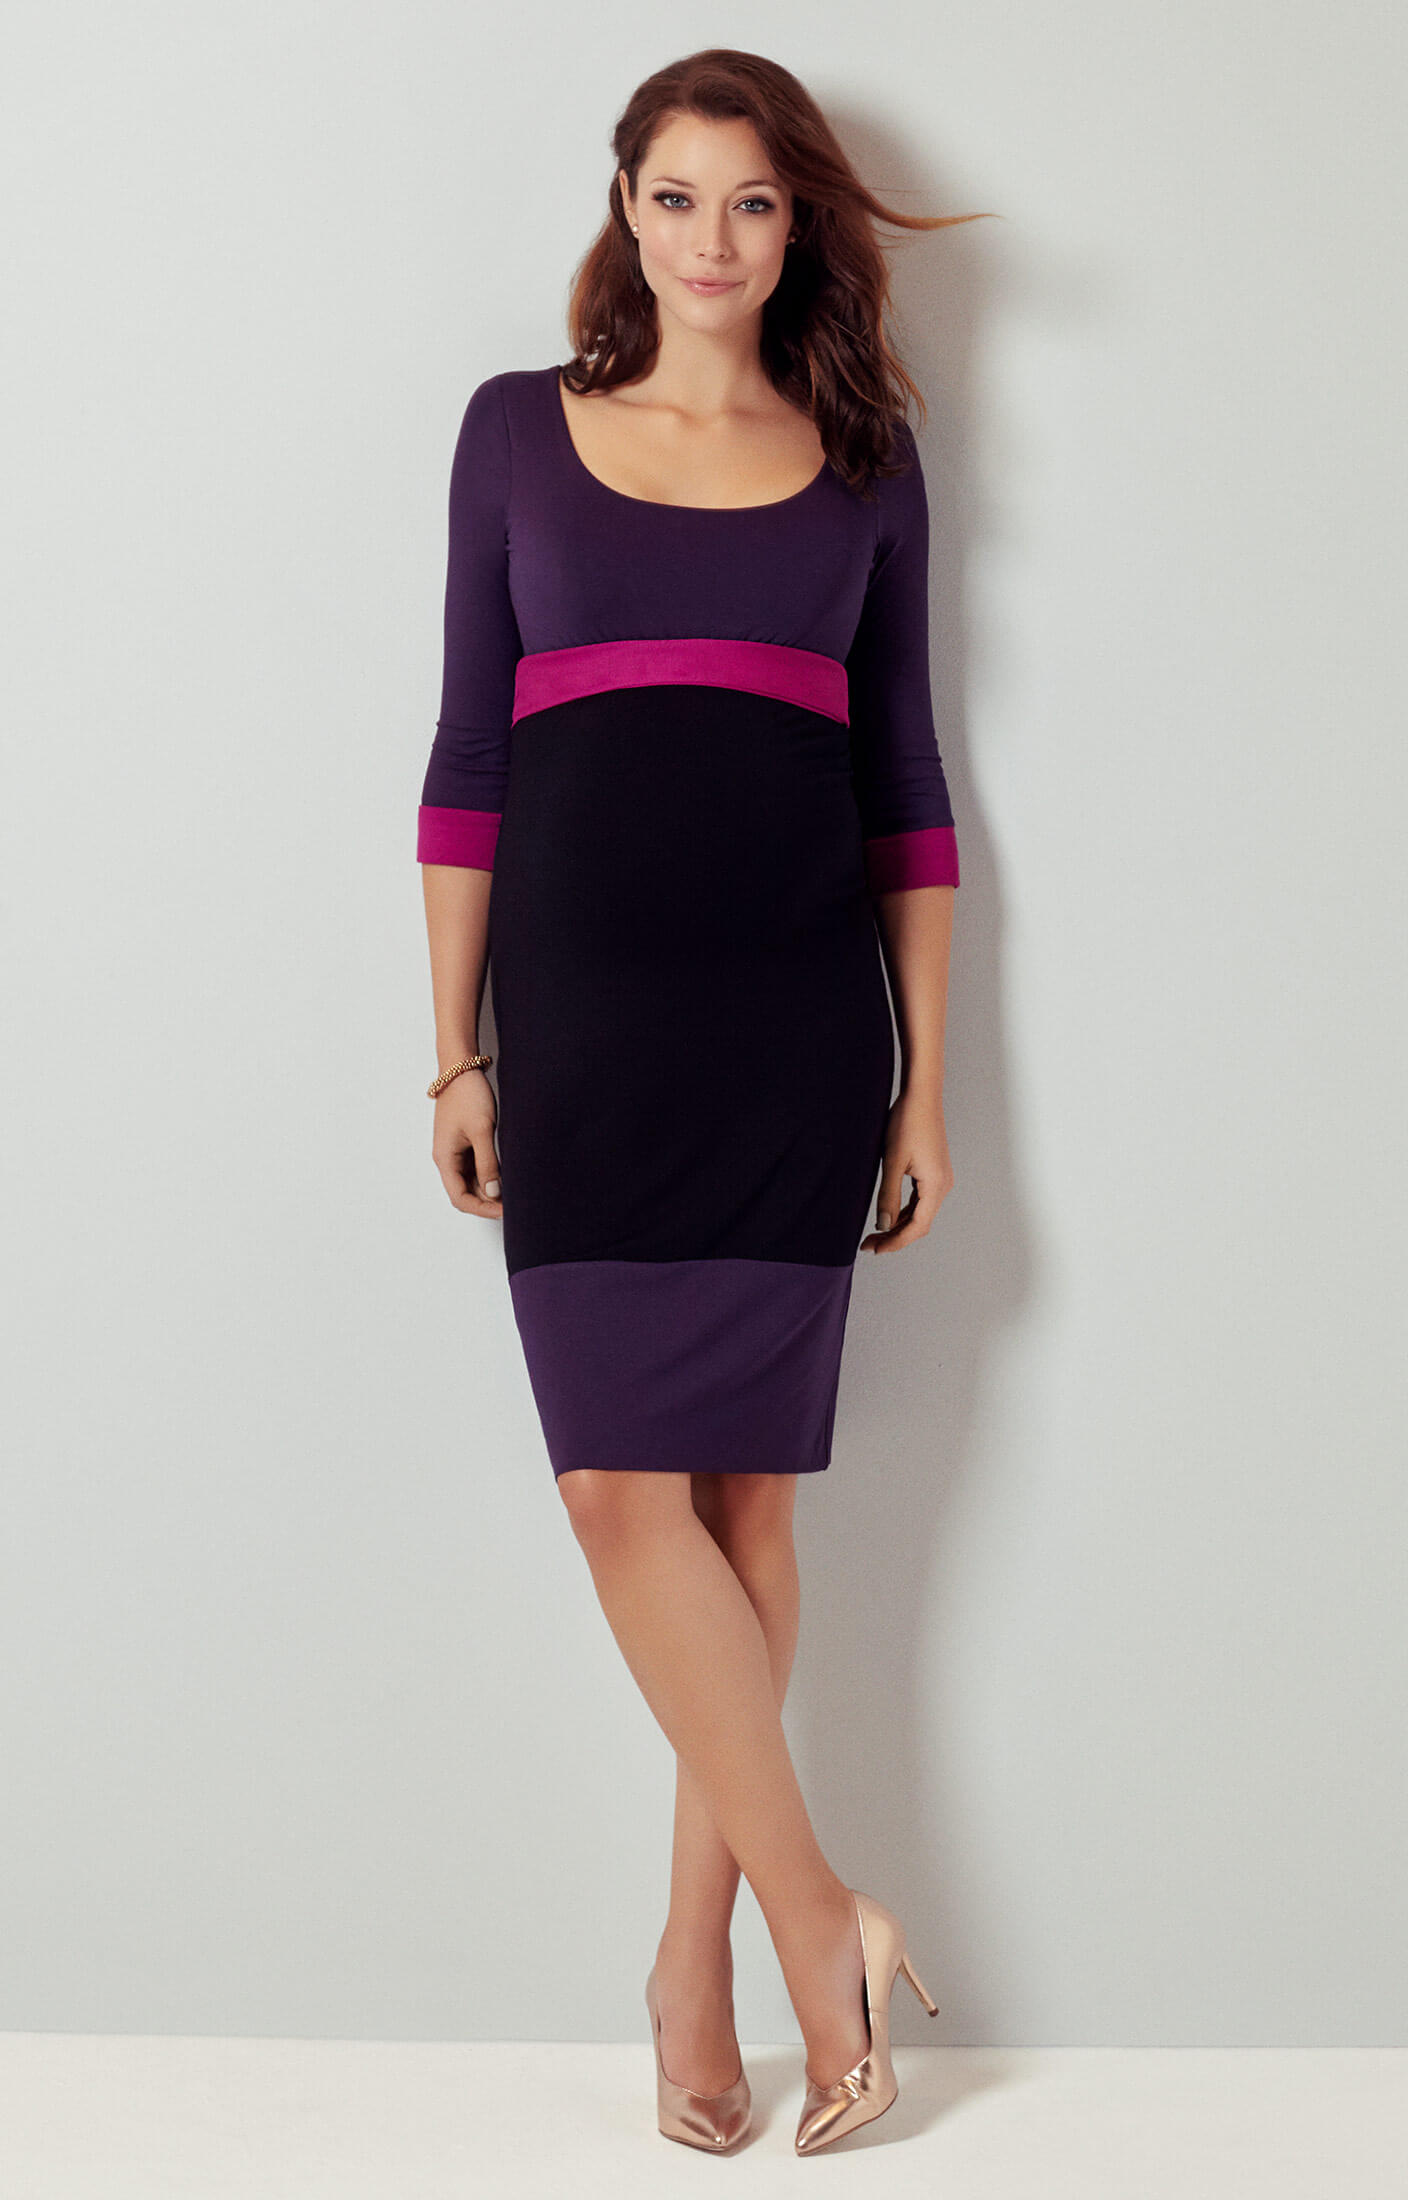 Colour block maternity dress purple maternity wedding dresses colour block maternity dress purple by tiffany rose ombrellifo Image collections